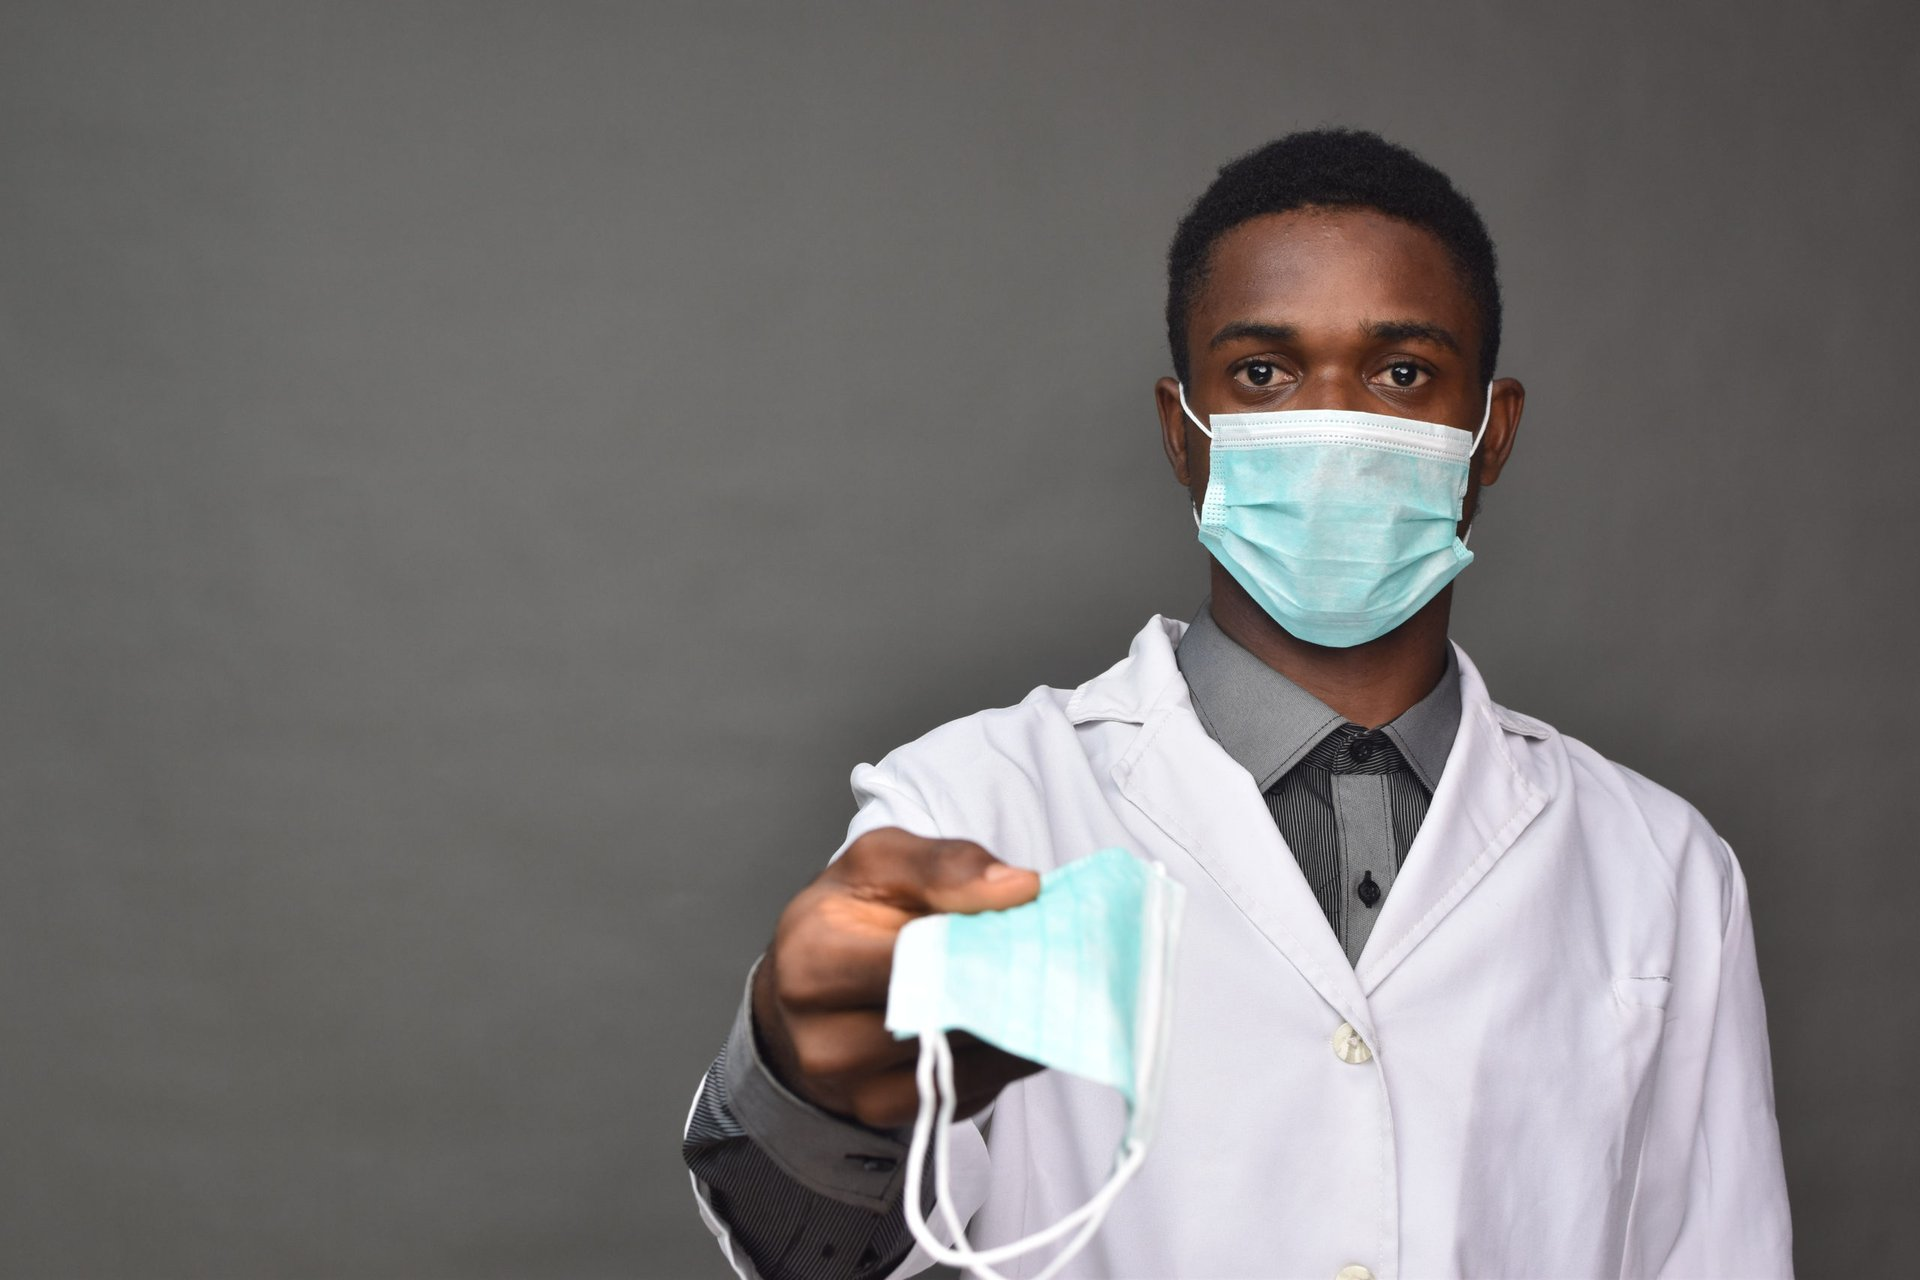 Doctor with mask